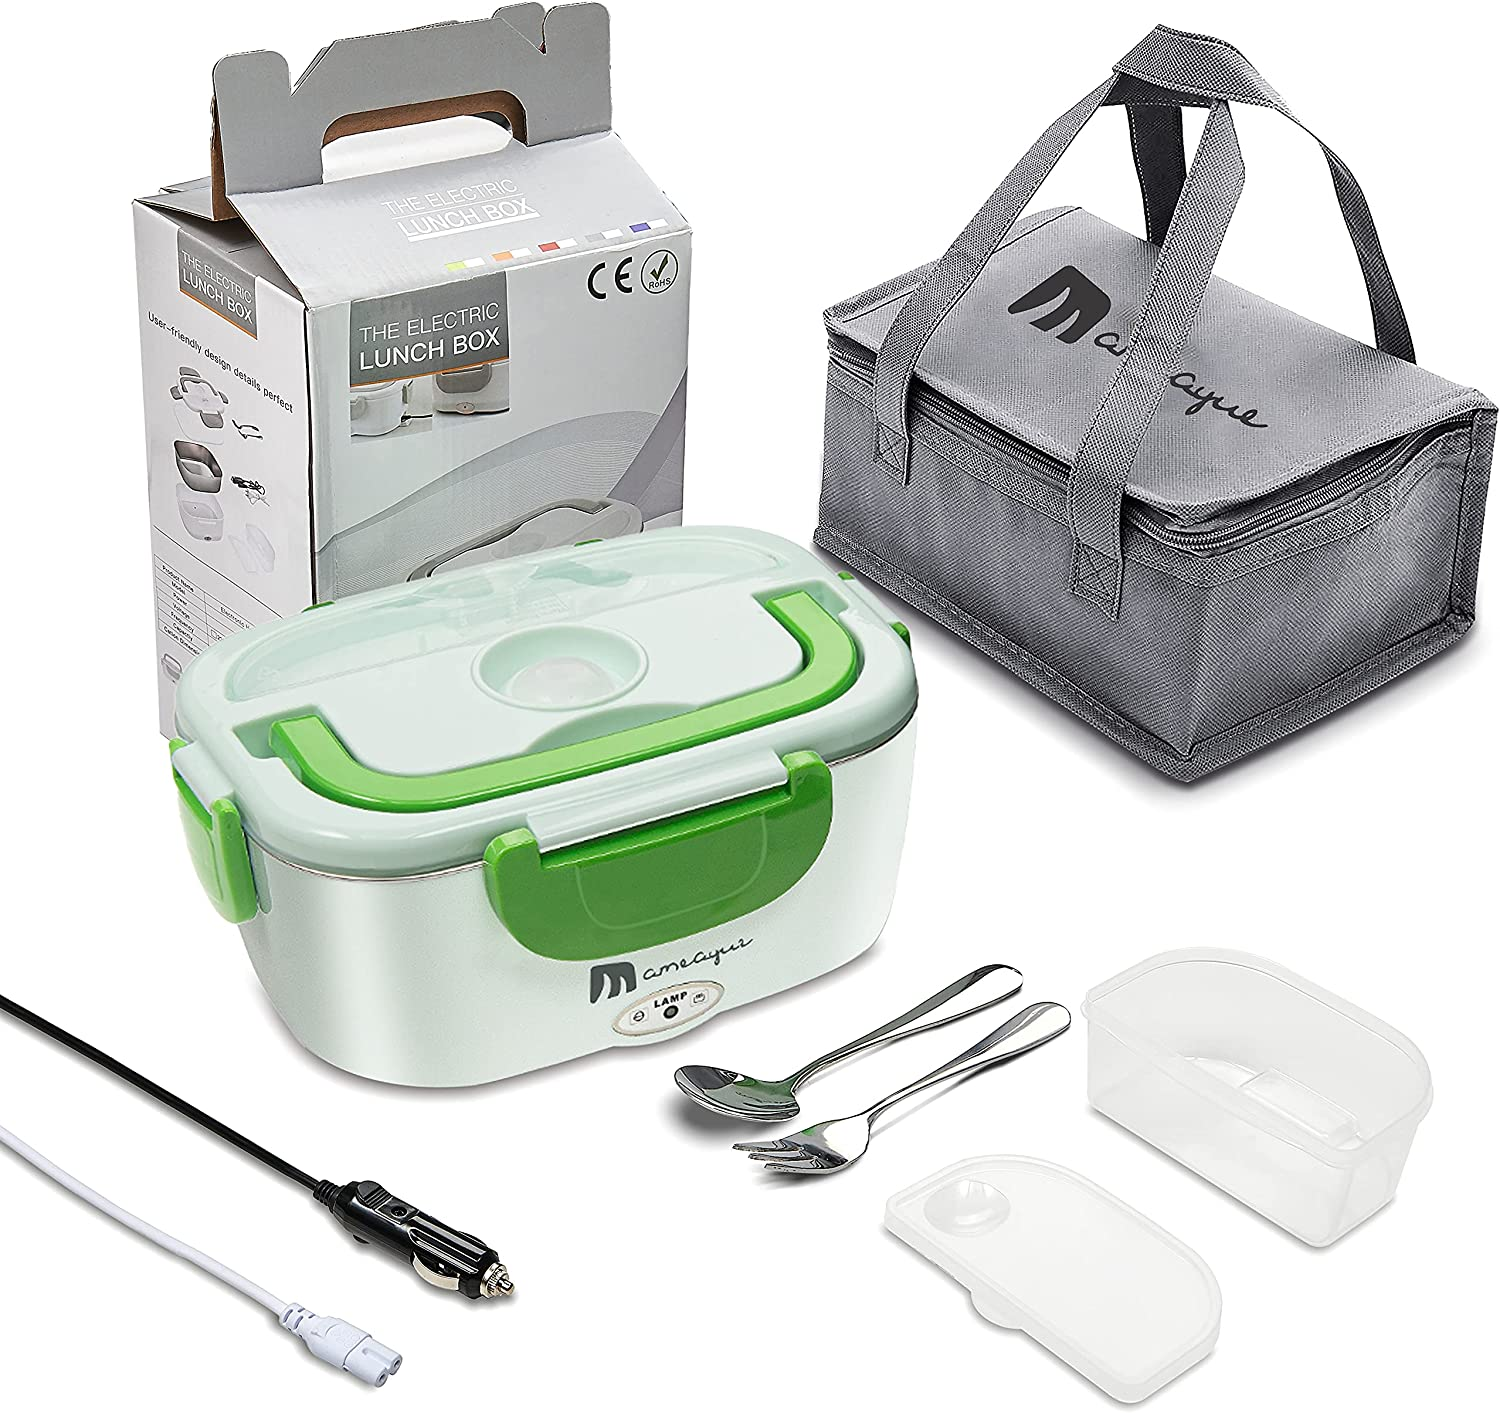 Electric Lunch Box[Complimentary Insulation Bag],MAMEAYUE 12V 24V 110V 3 in1 Portable Microwave for Car/Truck/Home–Leak proof, 1.5L Stainless Steel Food Warmer and Heater Container